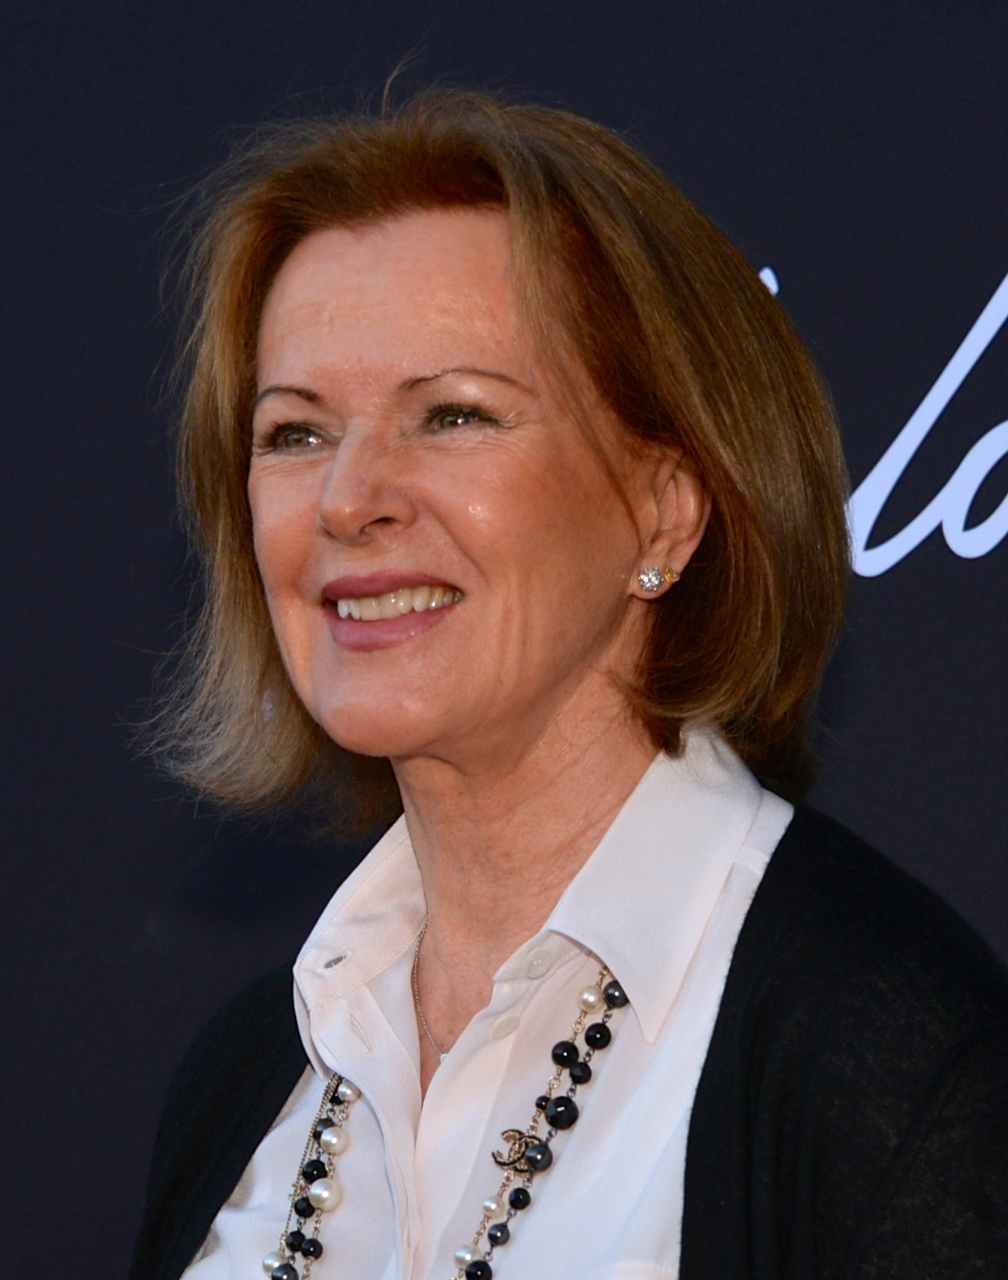 Anni-Frid Lyngstad in May 2013